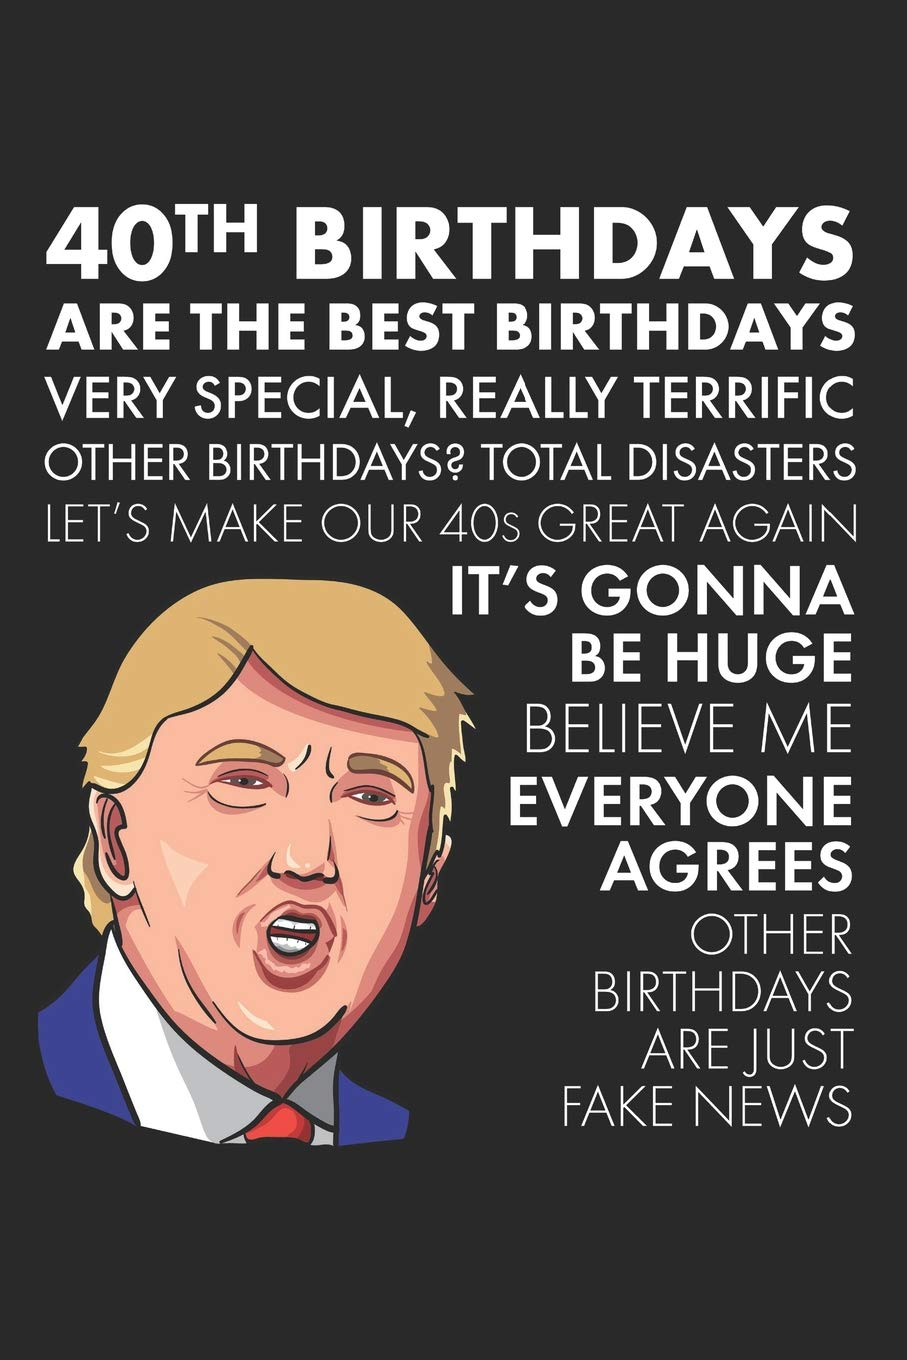 40th Birthdays Are The Best Birthdays A Funny Blank Lined Notebook With Donald Trump A Political Joke Gag Gift For Turning 40 The Birthday Pod 9781072617945 Amazon Com Books